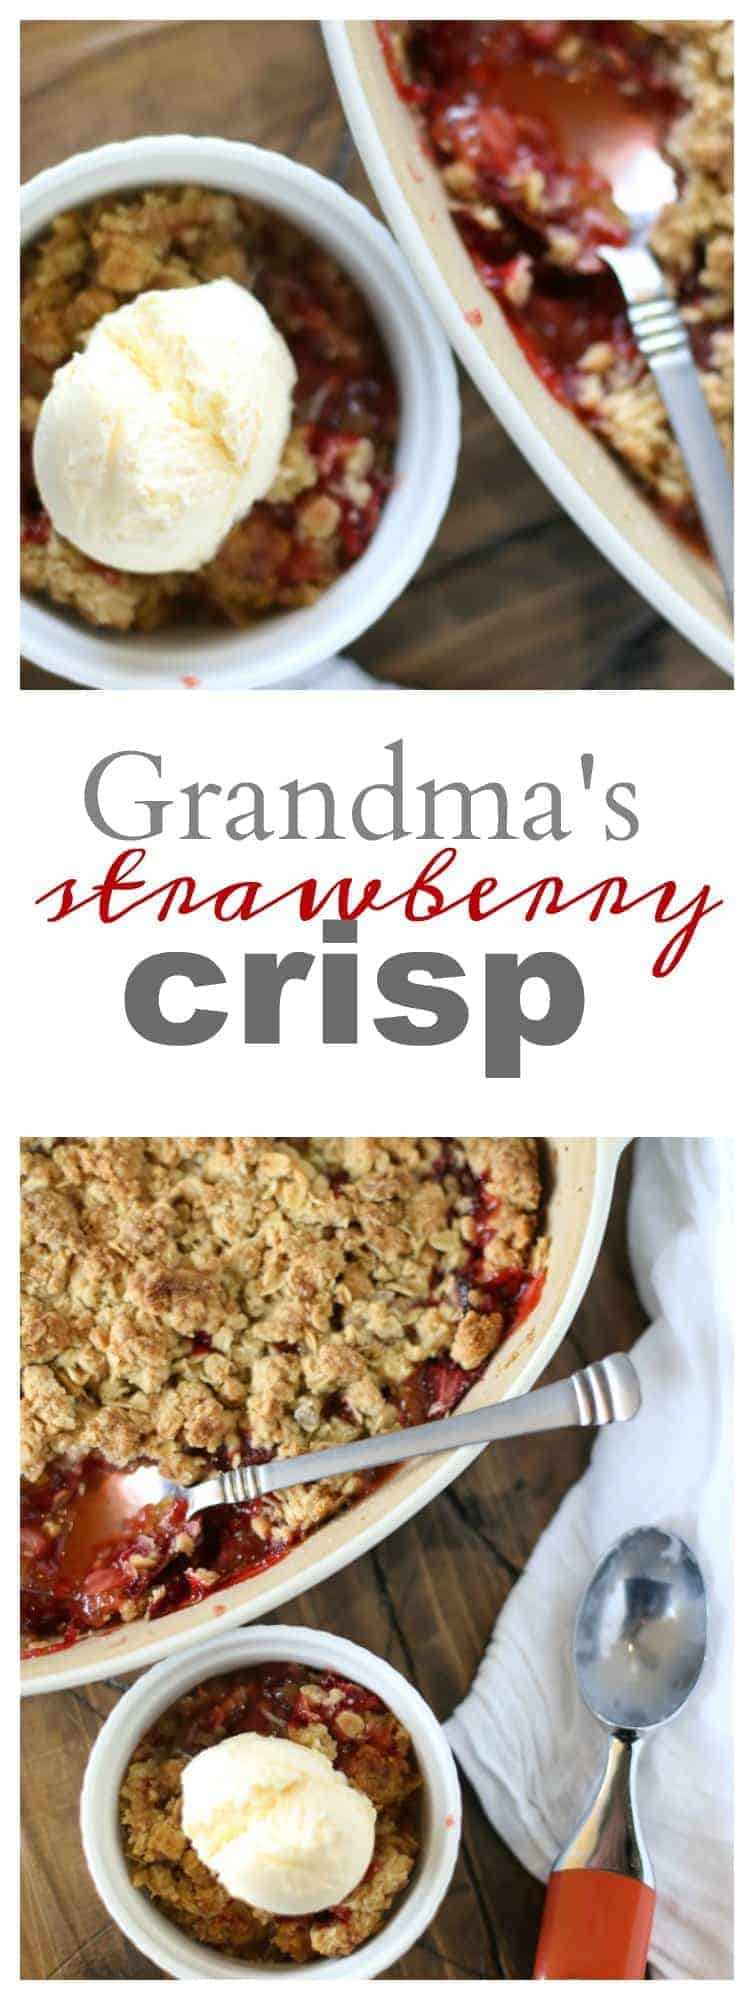 Strawberry Crisp - My grandma's original recipe! Serve it warm with some vanilla ice cream melting on top! Yum!!